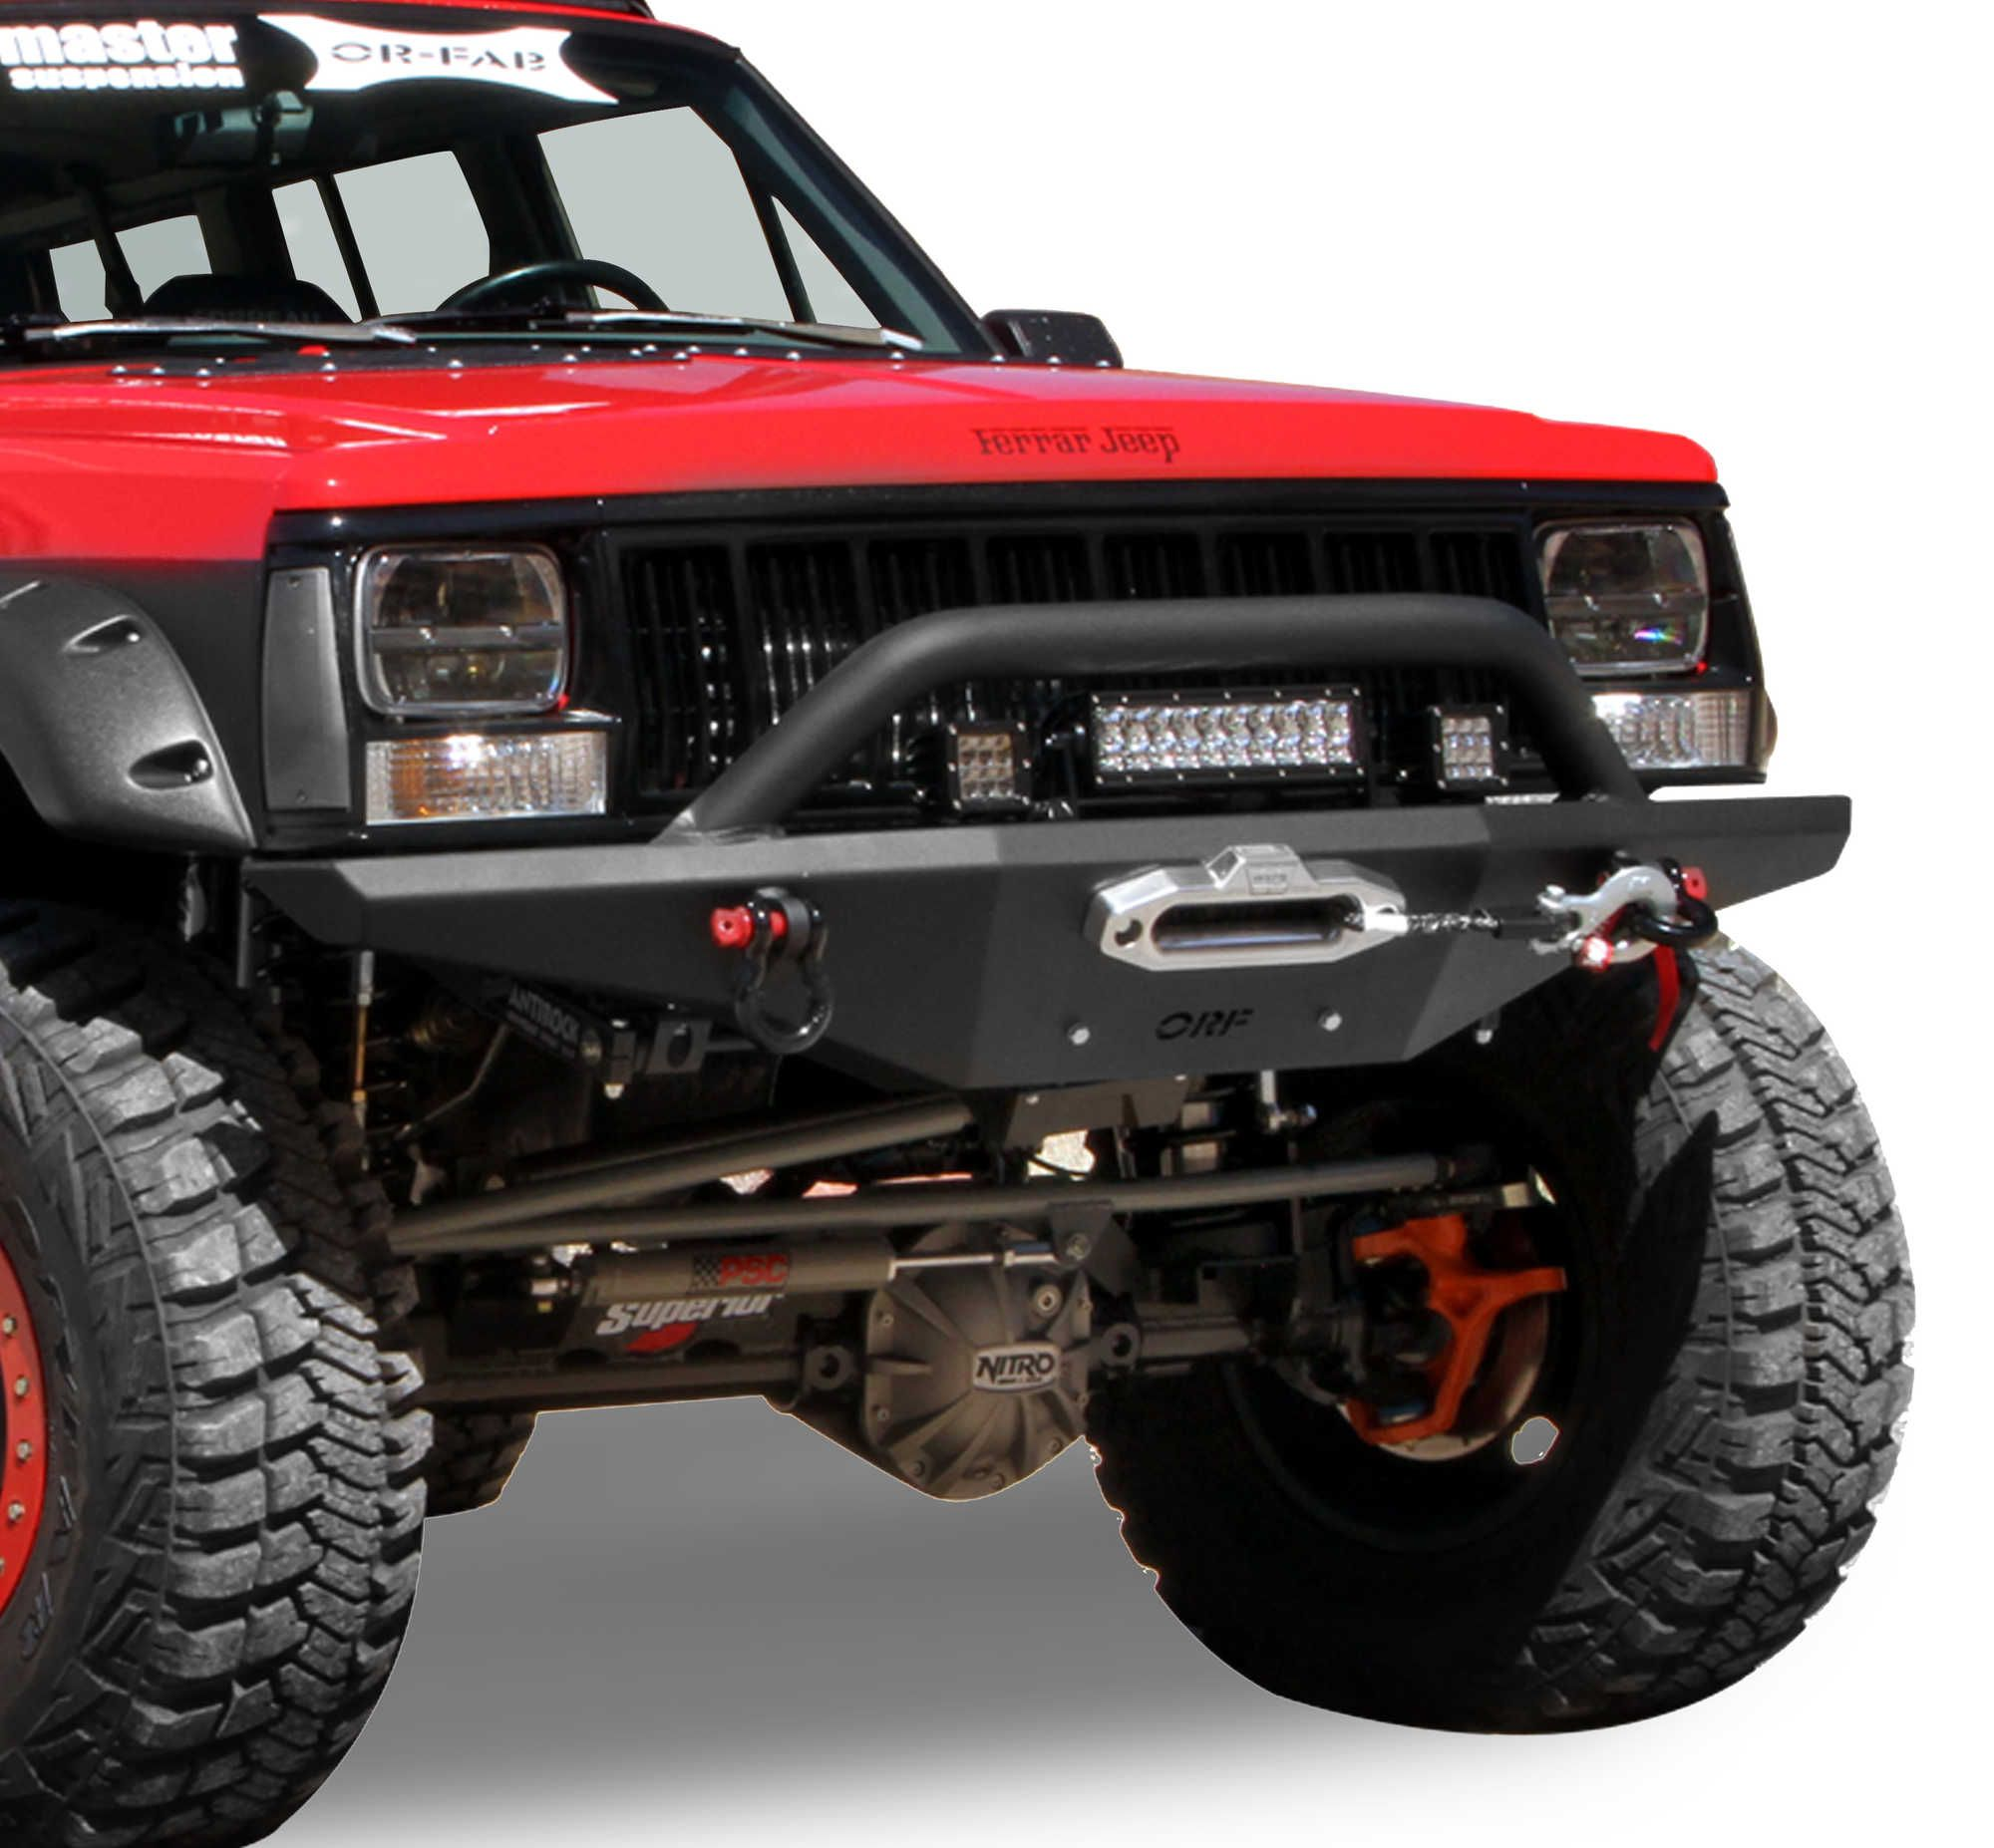 Or Fab Front Hd Bumper With Grille Guard For 84 01 Jeep Cherokee